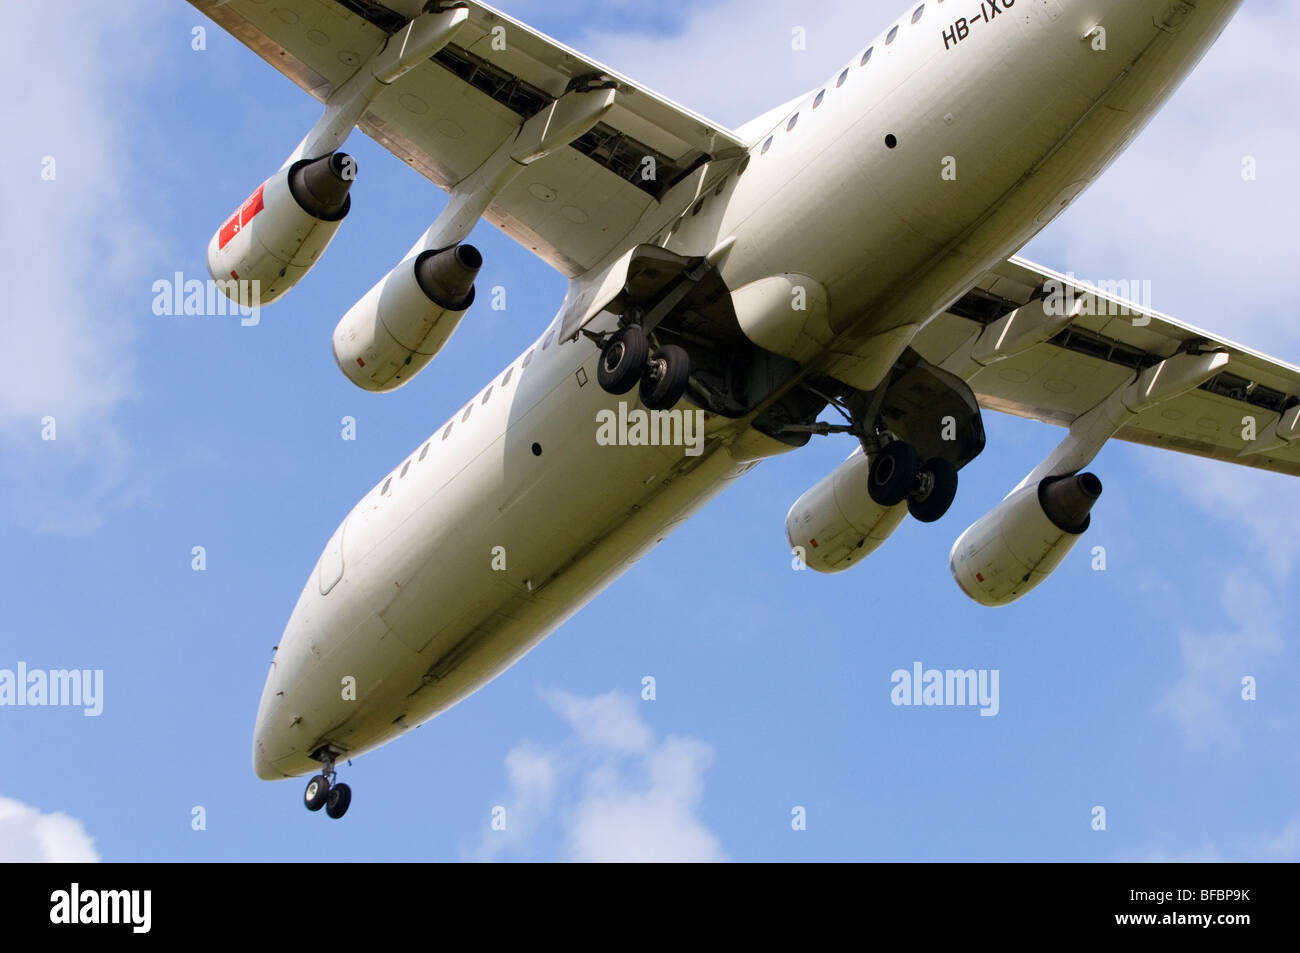 Avro RJ100 operated by Swiss International Air Lines on approach for landing at Birmingham Airport - Stock Image